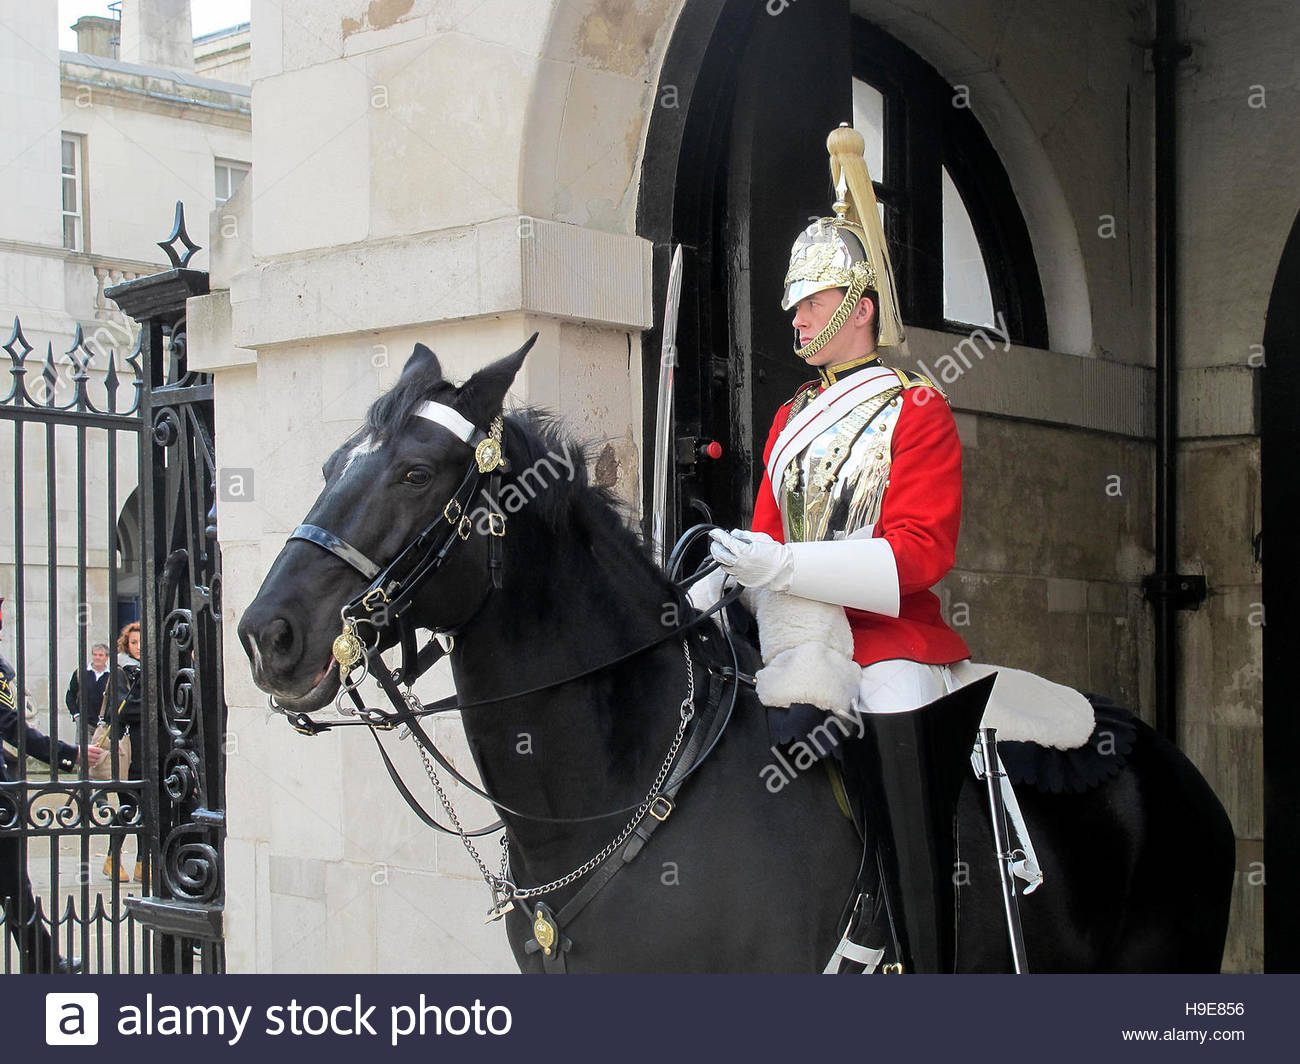 LONDON, UK - OCTOBER 2014: The Queen´s Household Cavalry in traditional uniform in St James's Park in London. Stock Photo